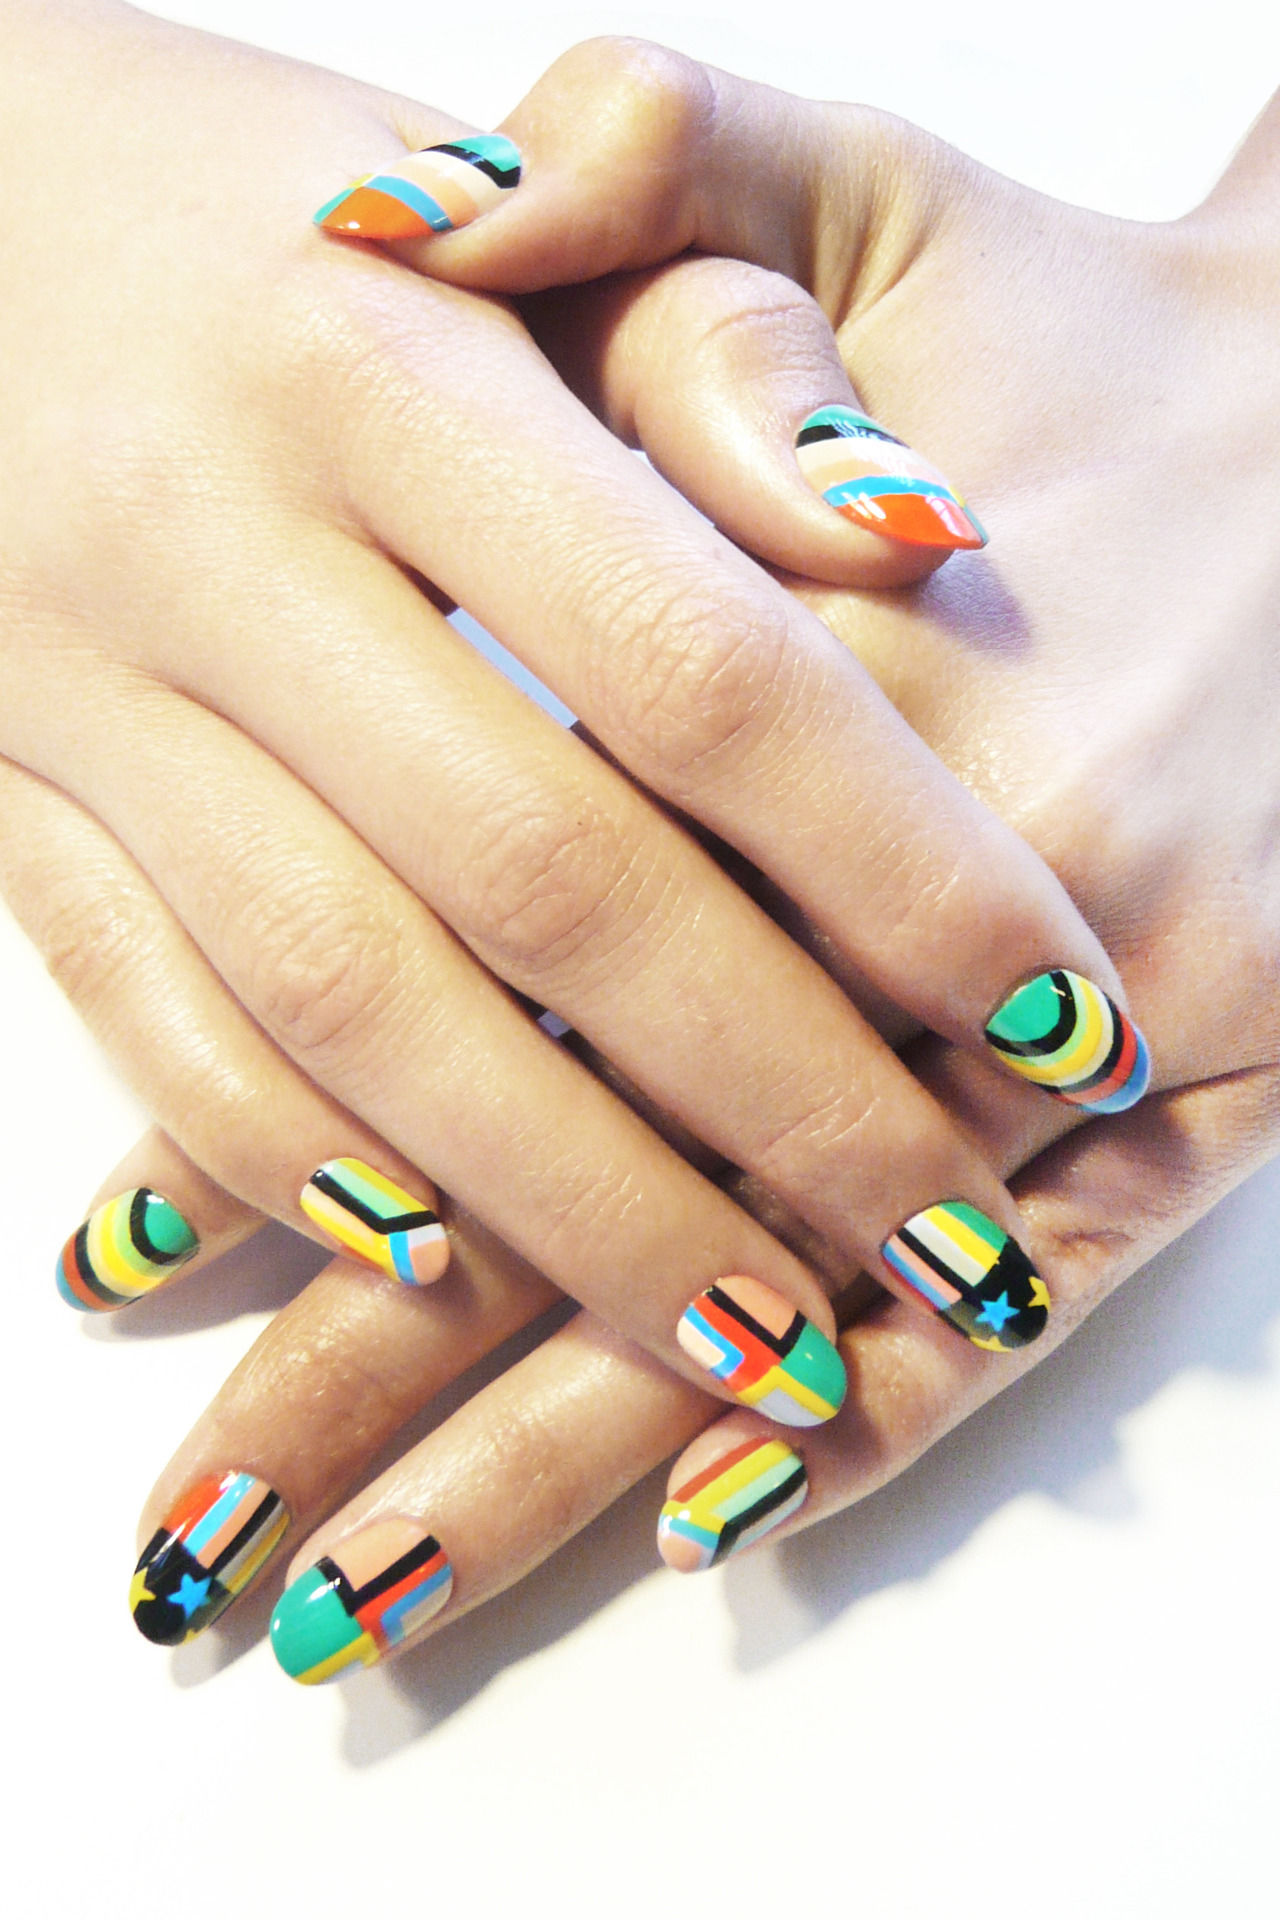 Colorful Designed Nails Pictures, Photos, and Images for Facebook ...